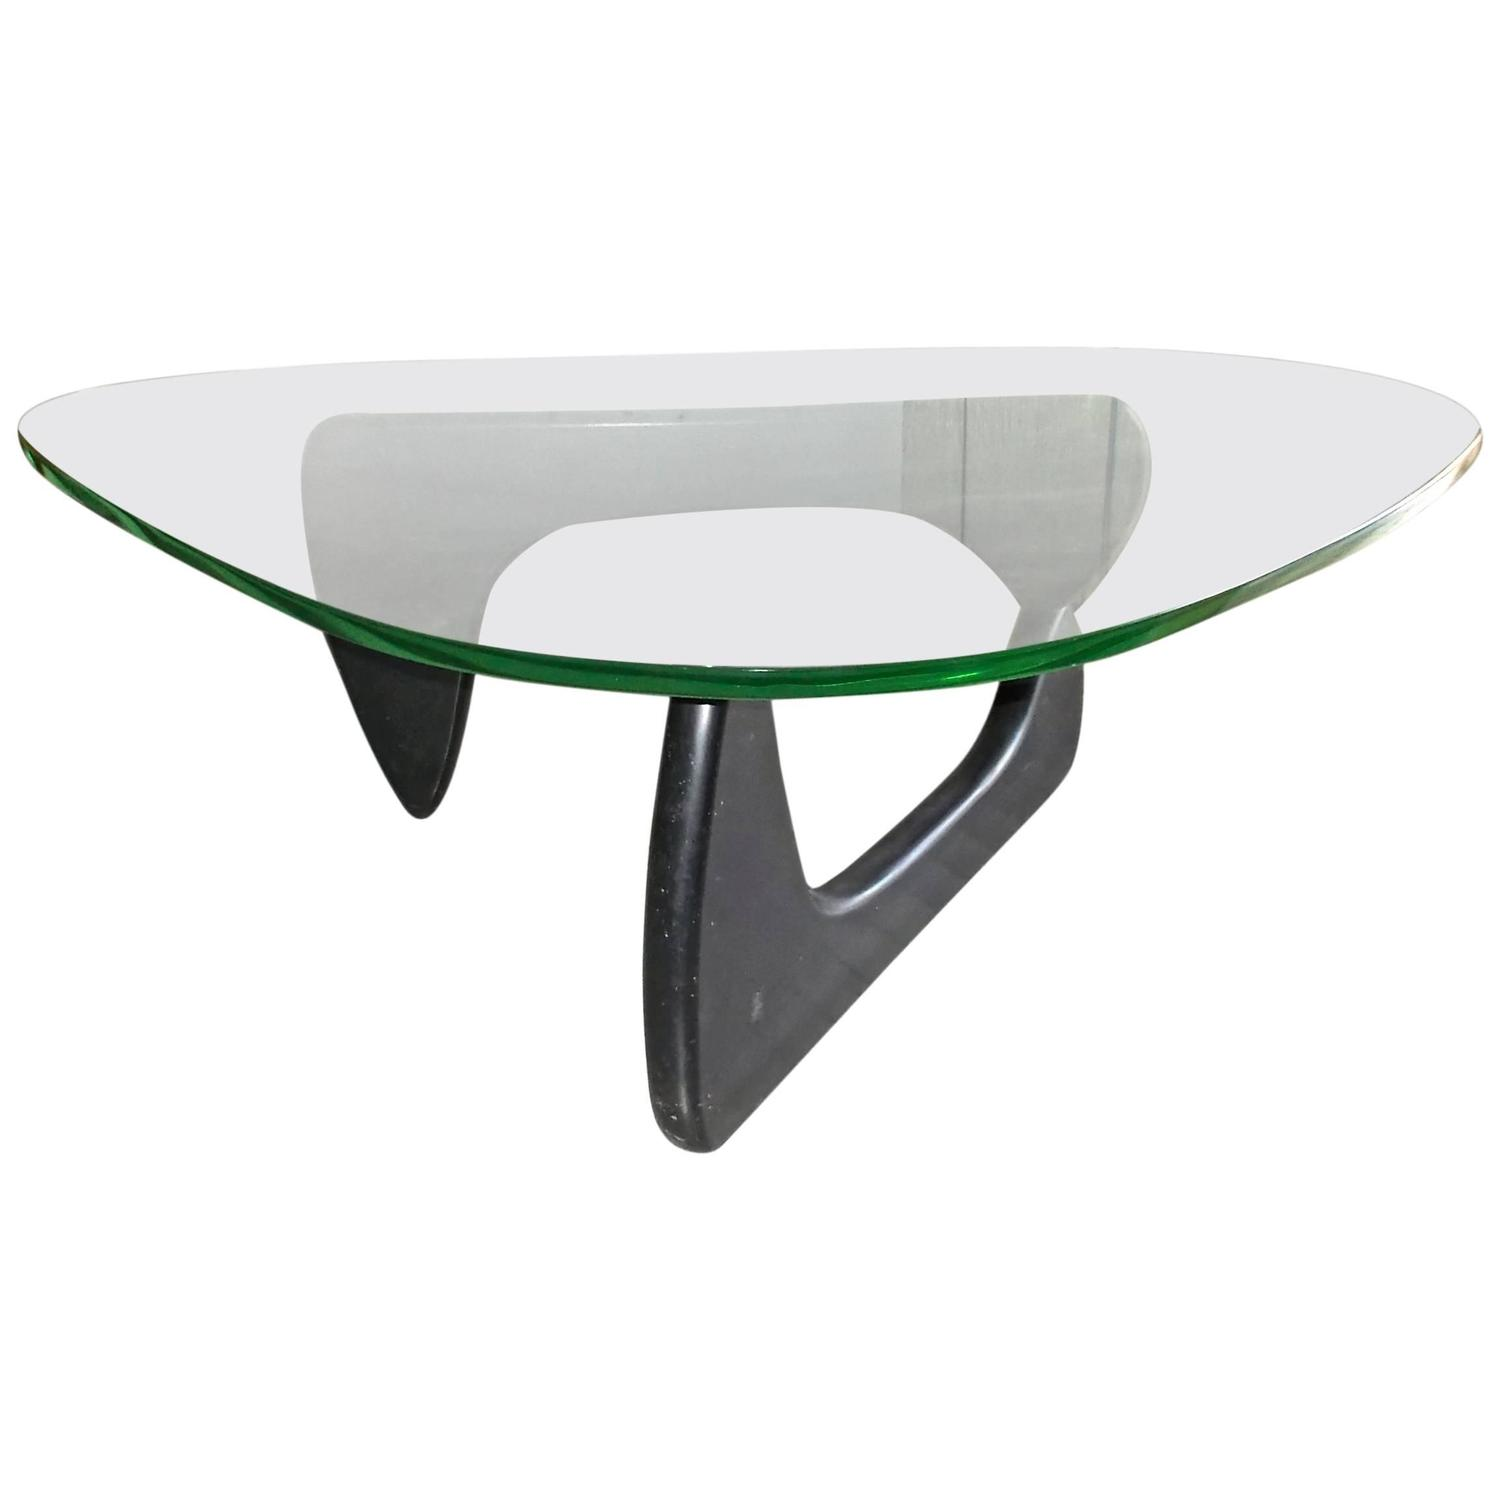 Isamu noguchi early and rare in 50 herman miller coffee table for sale at 1stdibs Herman miller noguchi coffee table